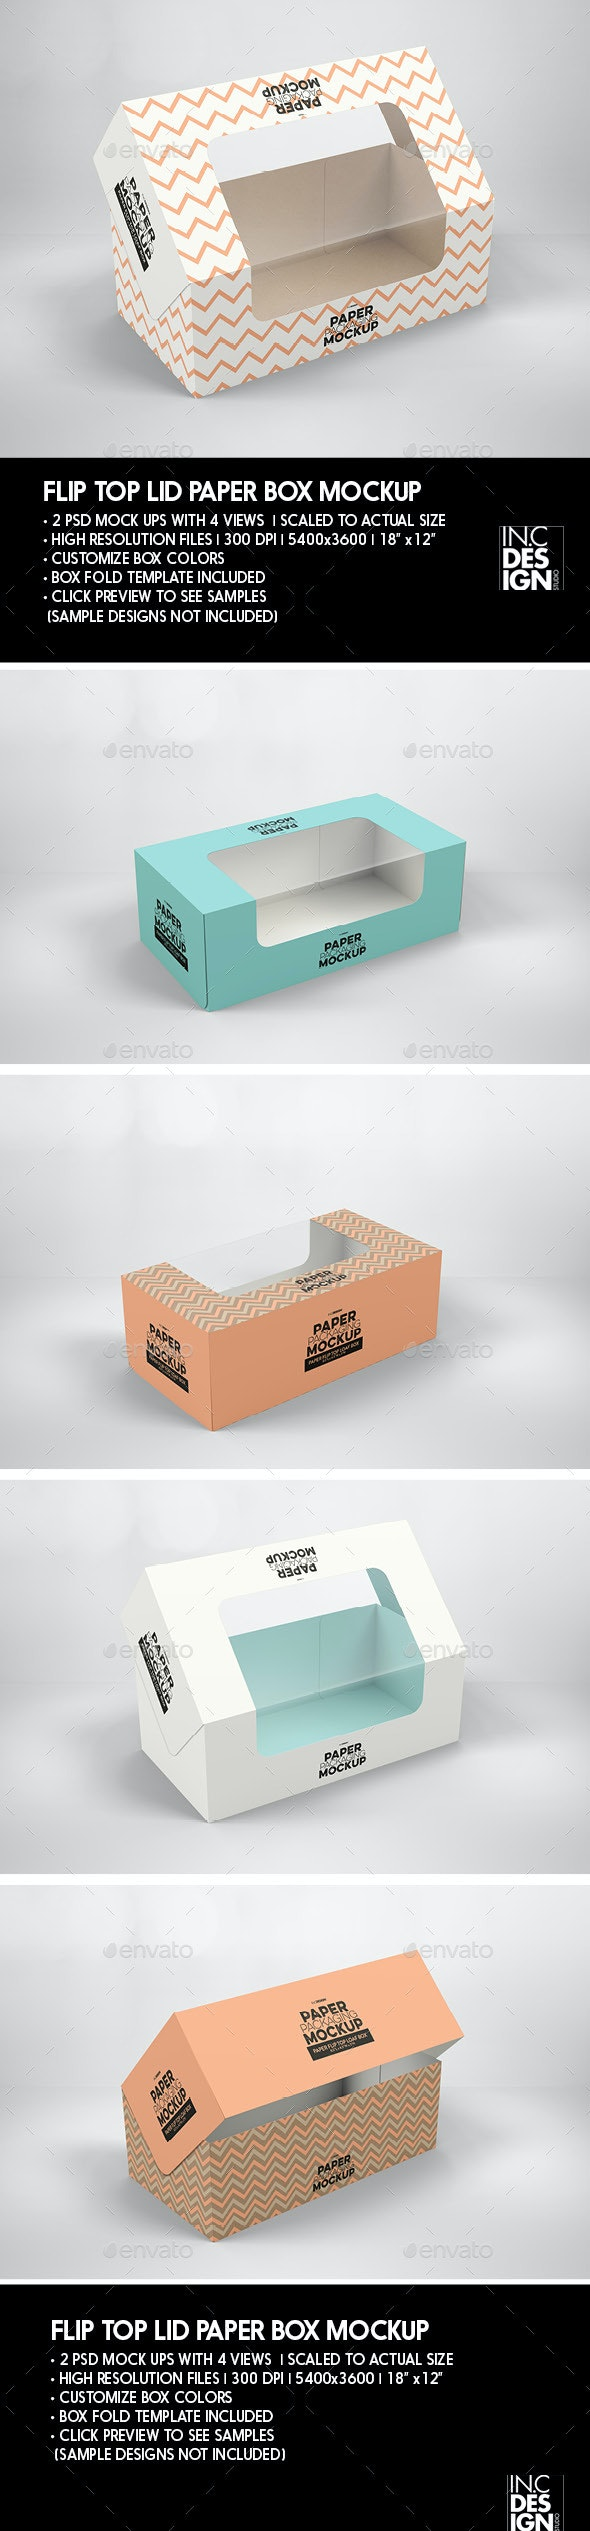 Flip Top Loaf Box with Window Packaging Mockup - Product Mock-Ups Graphics